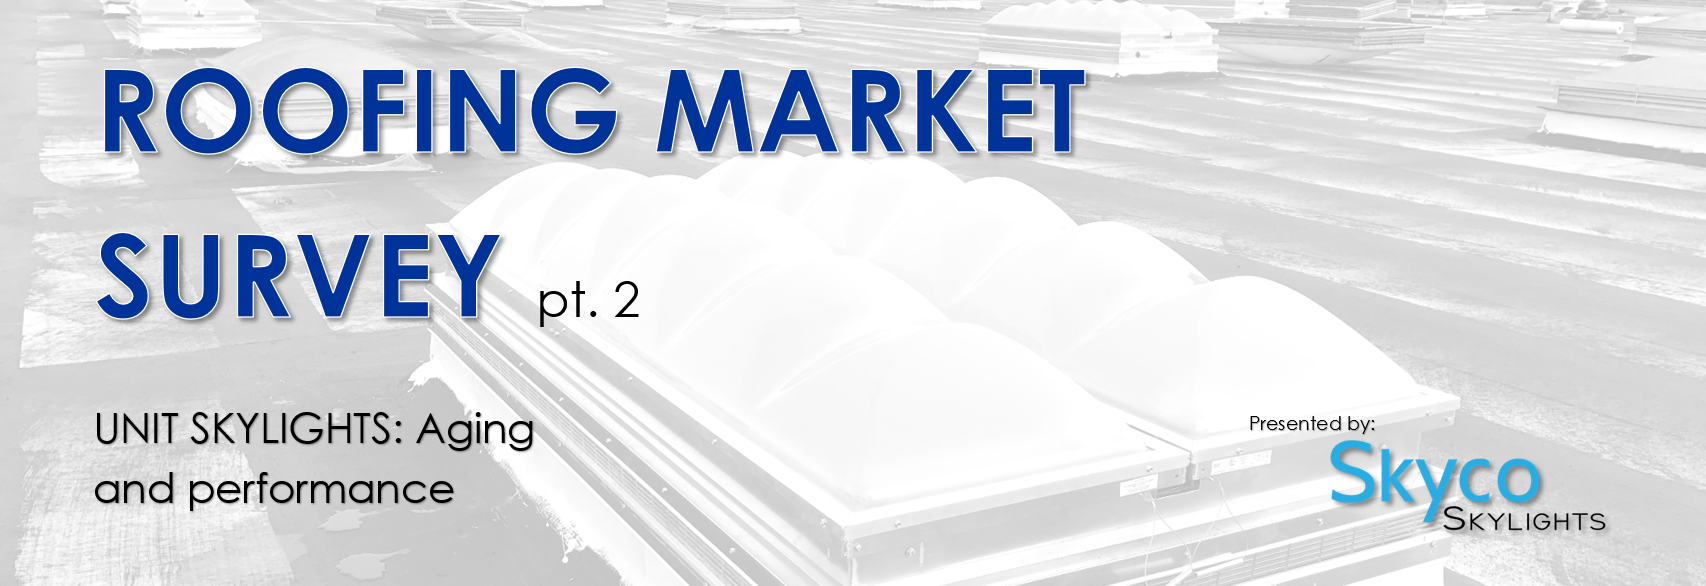 Roofing Market Survey pt. 2